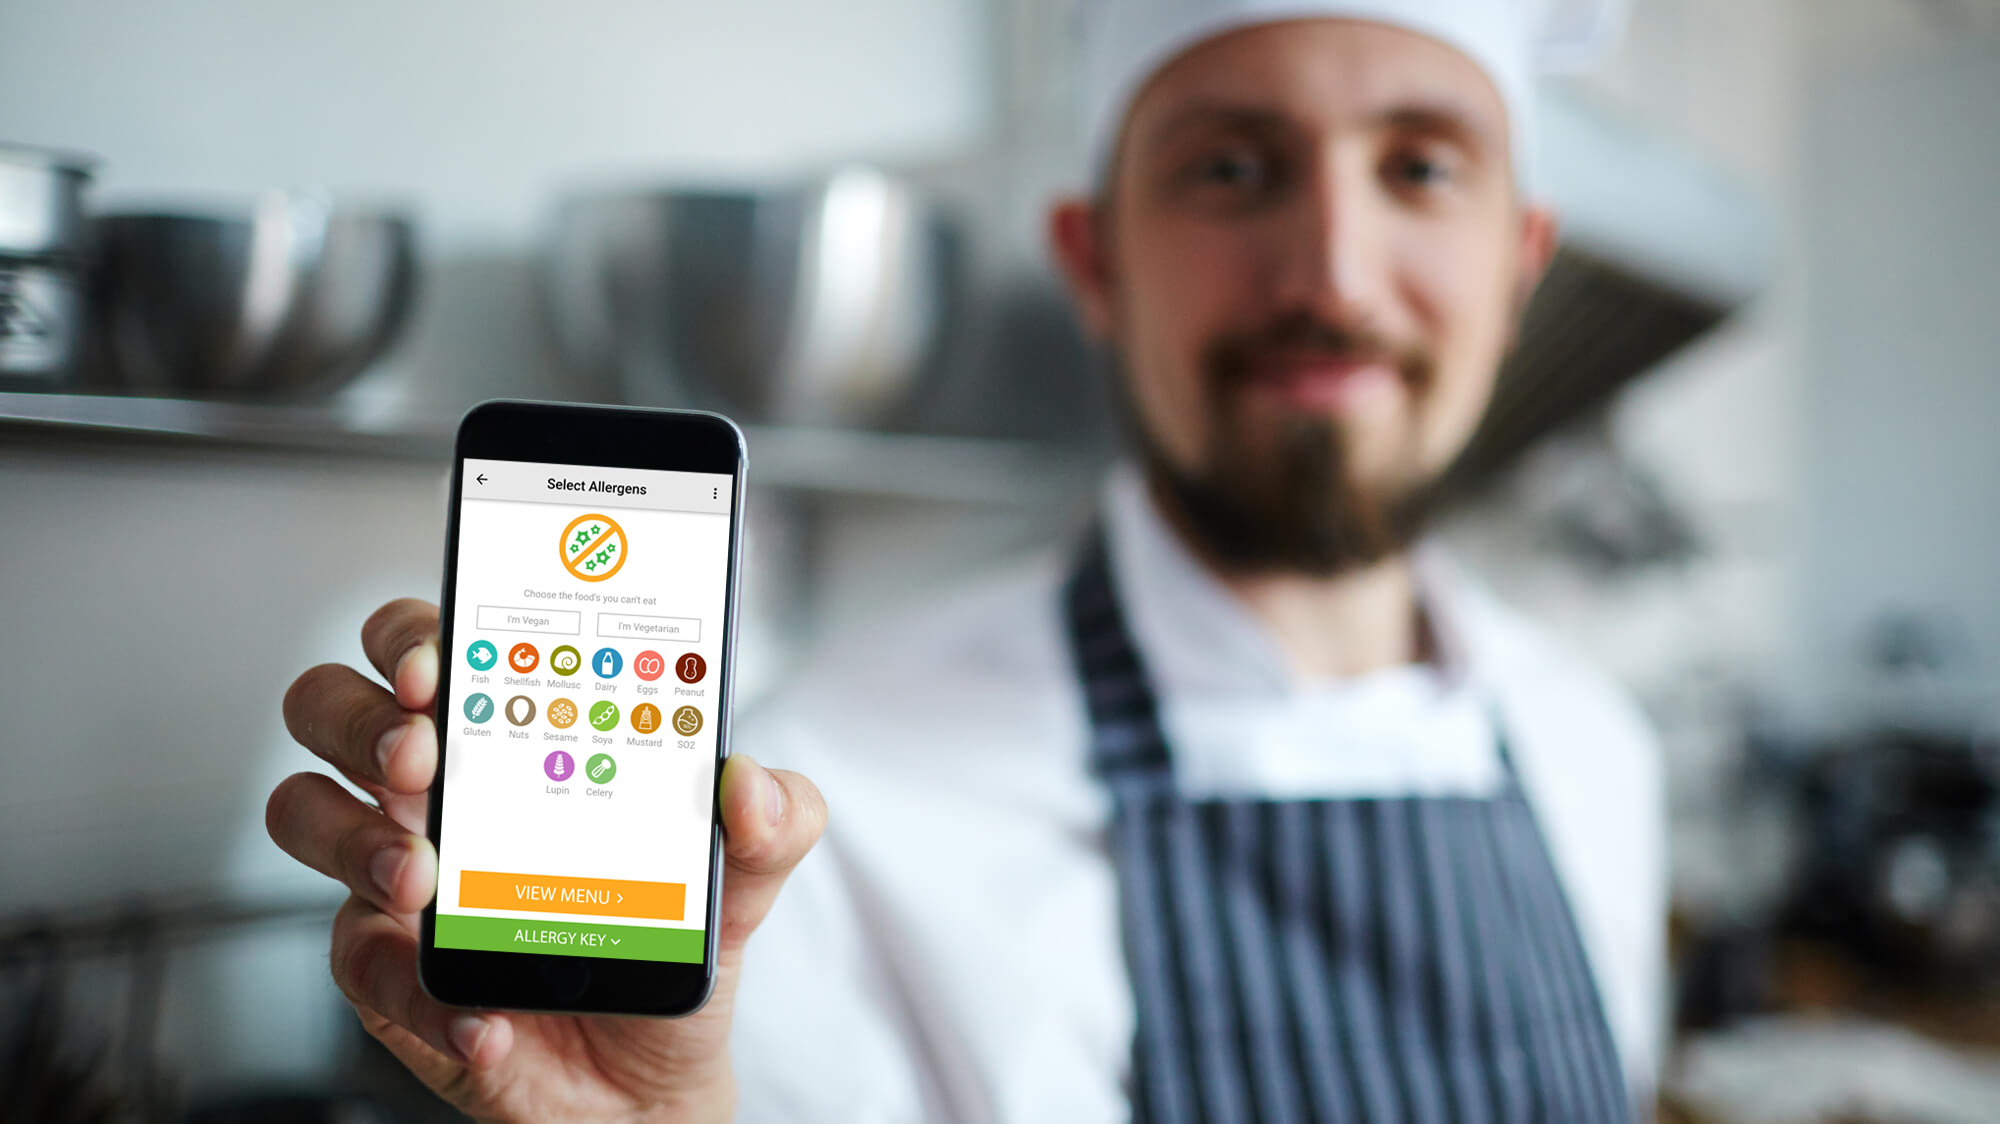 Chef with Allergy Menu App